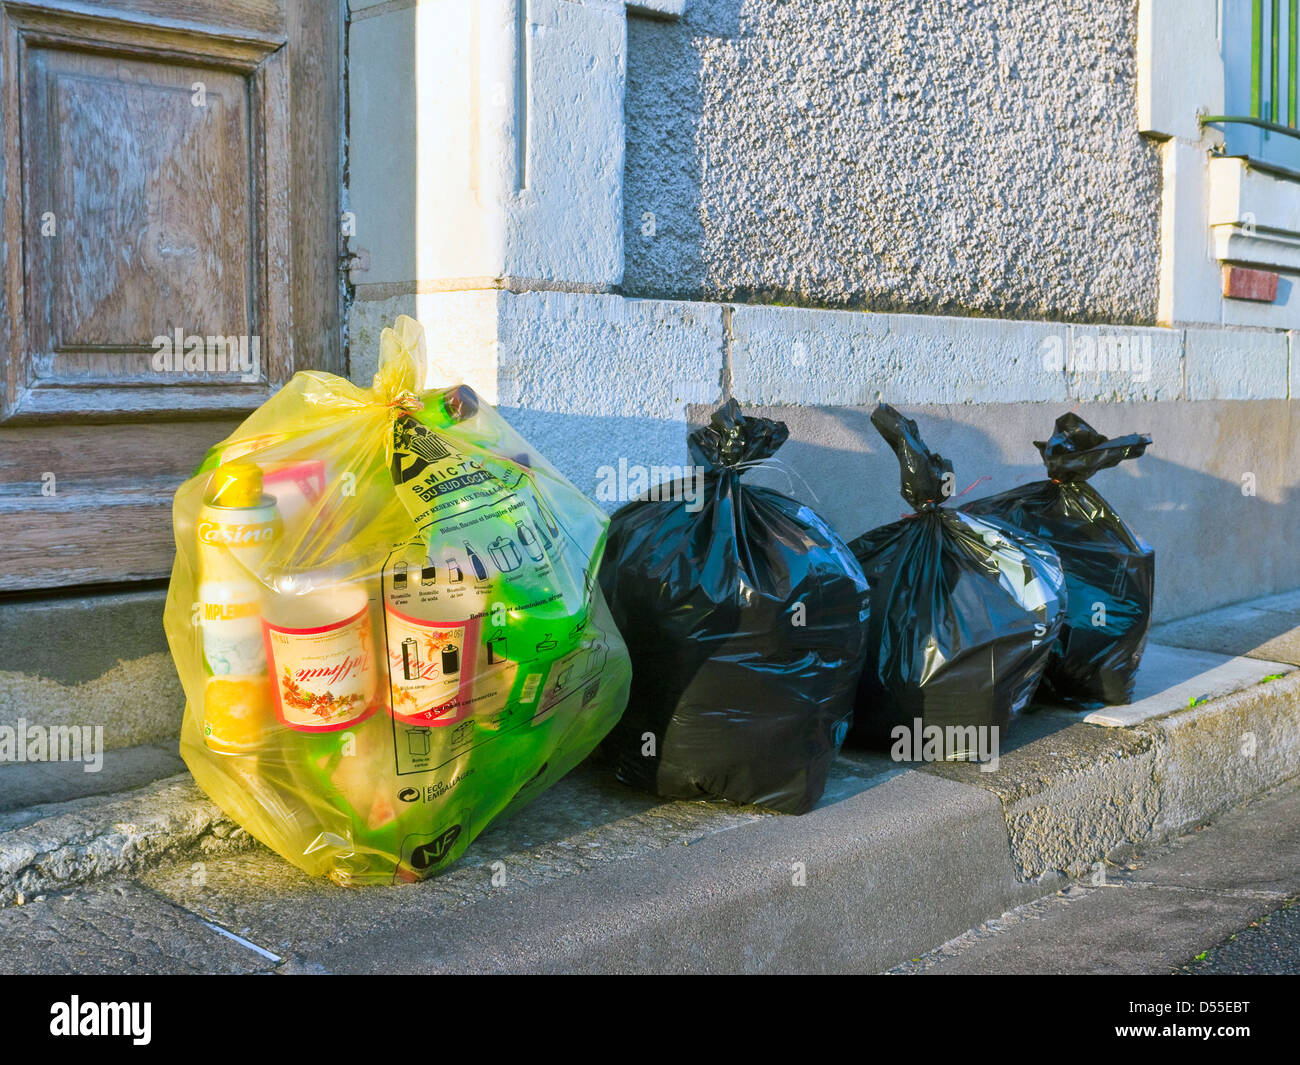 Yellow and black domestic rubbish sacks awaiting collection - France. - Stock Image